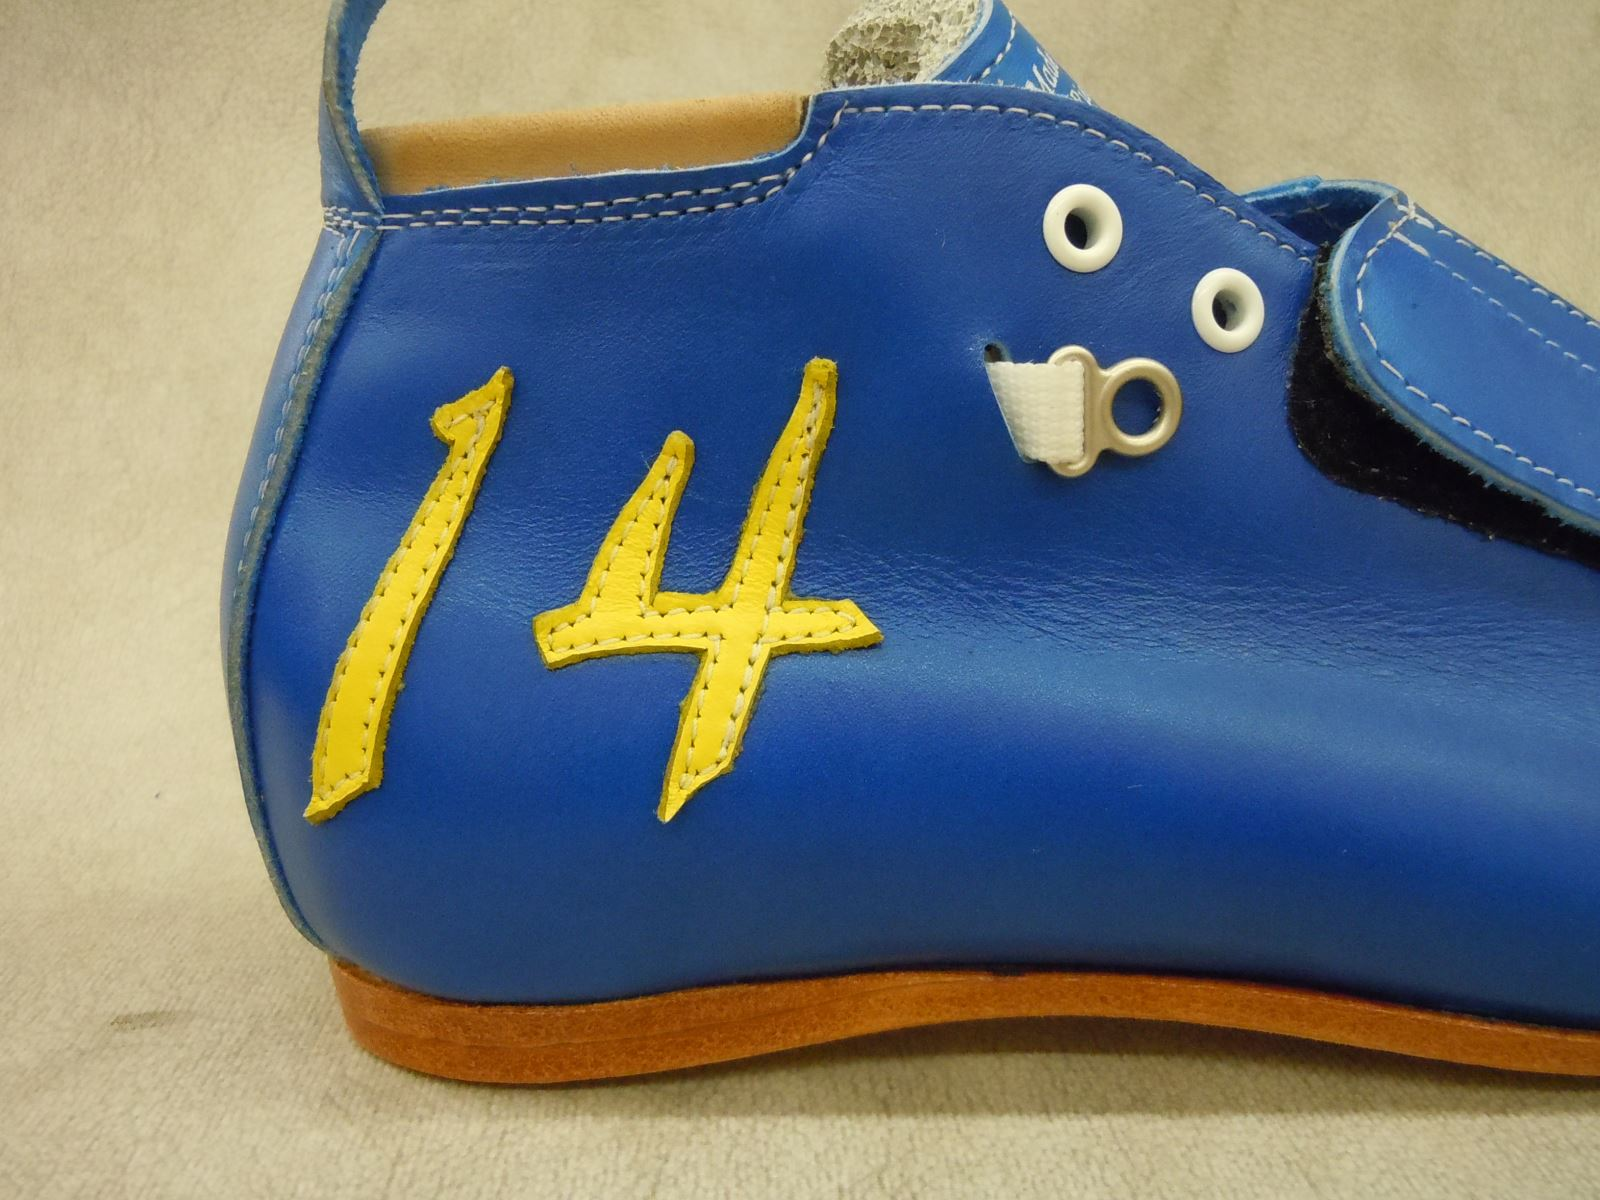 Full Custom Boot Graphic - Custom #14 Graphic